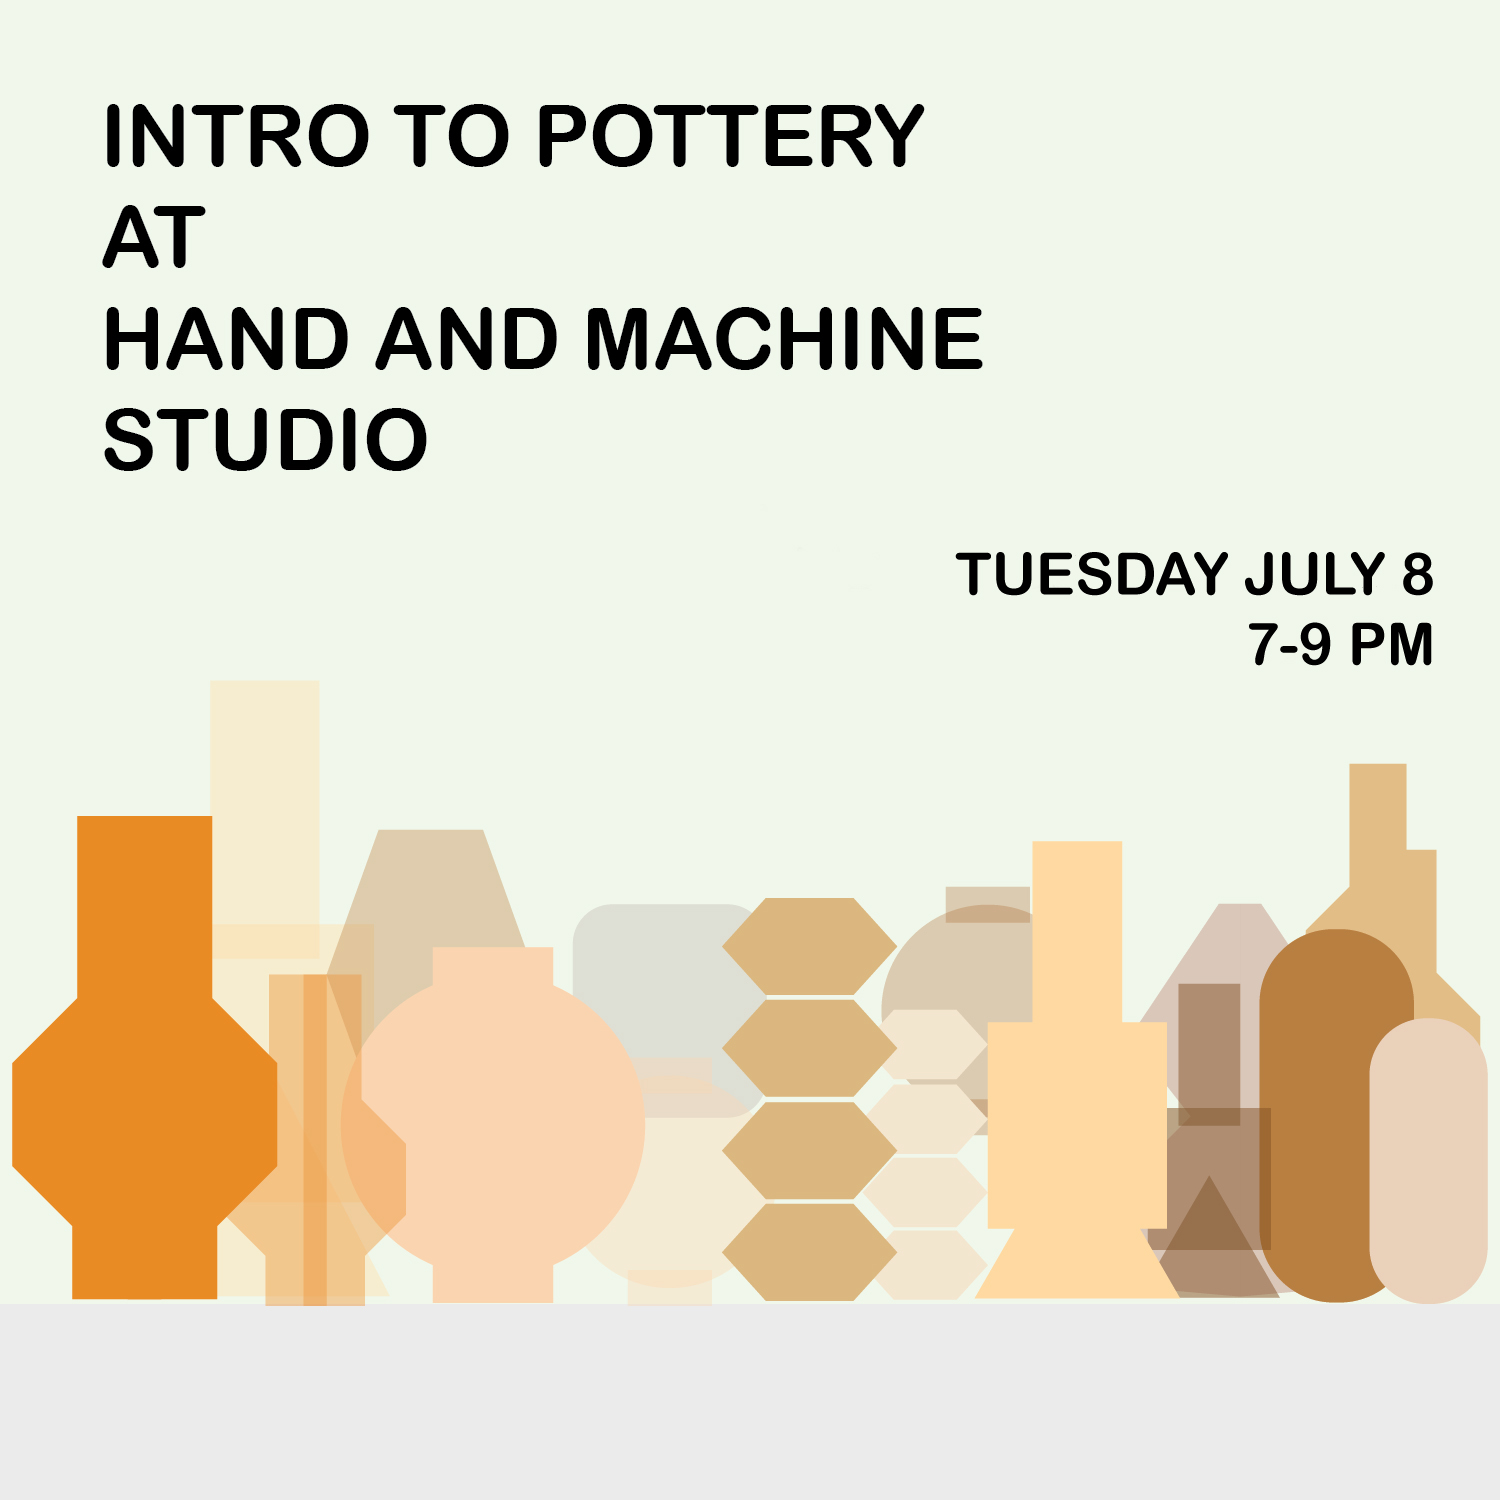 http://www.handandmachinestudio.com/classes-workshops/intro-to-ceramics